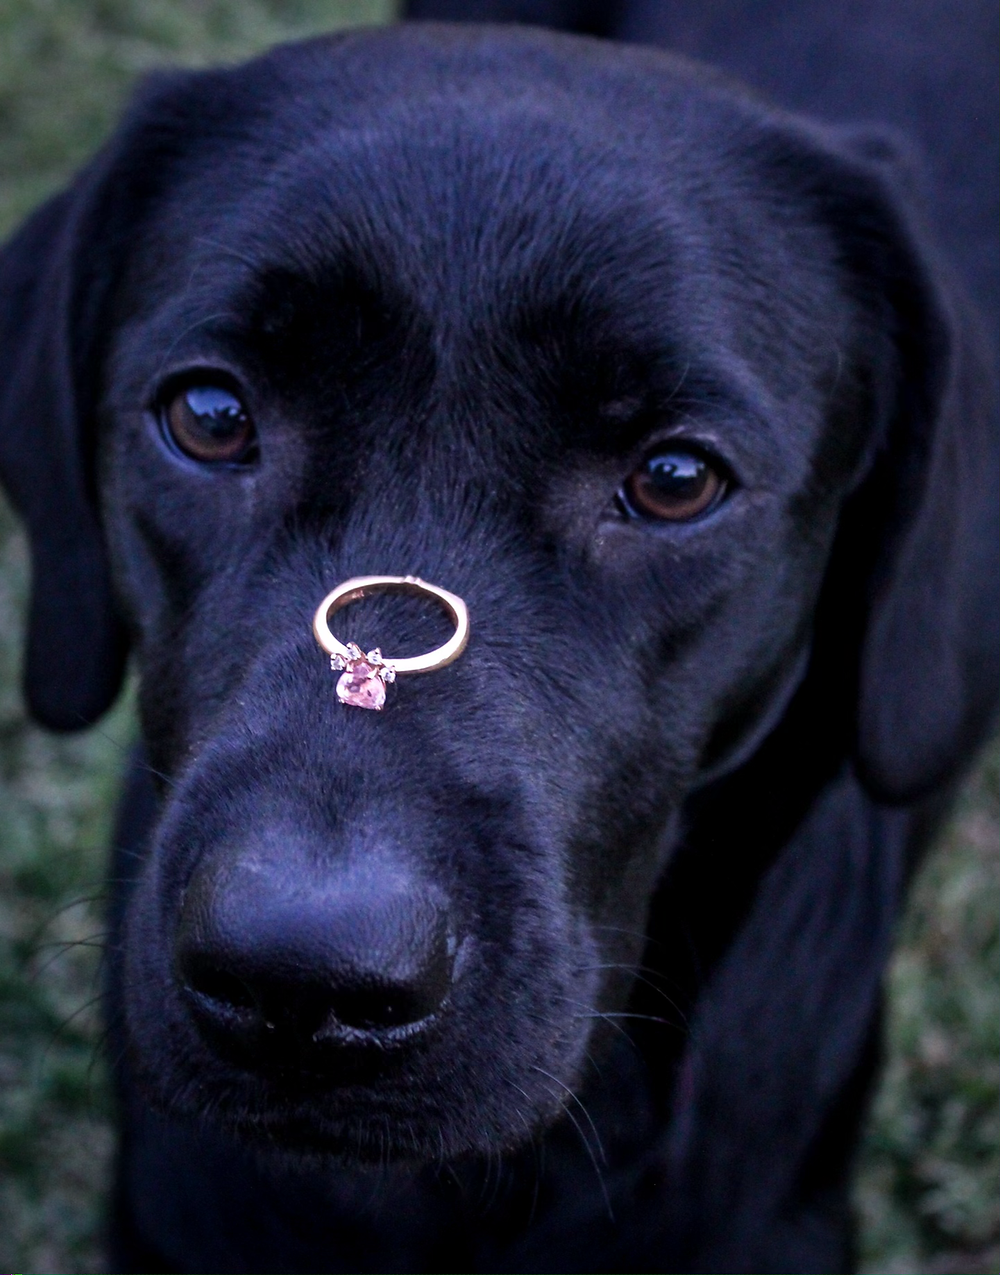 Dog with engagement ring on nose